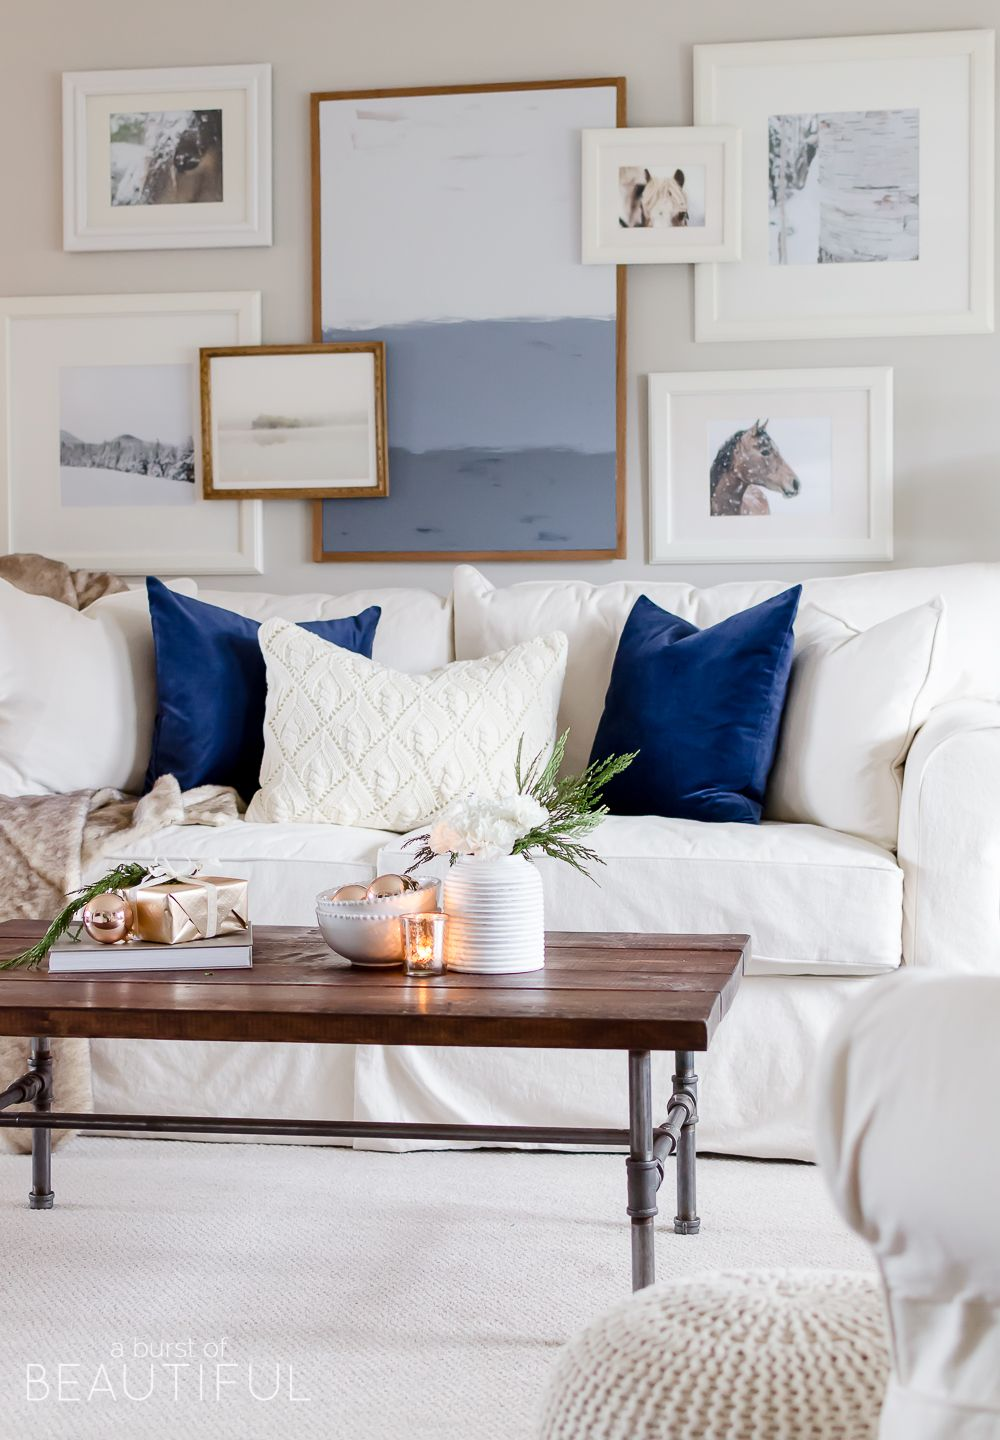 10 Best Winter Decoration Ideas in 2018 - How To Decorate For Winter